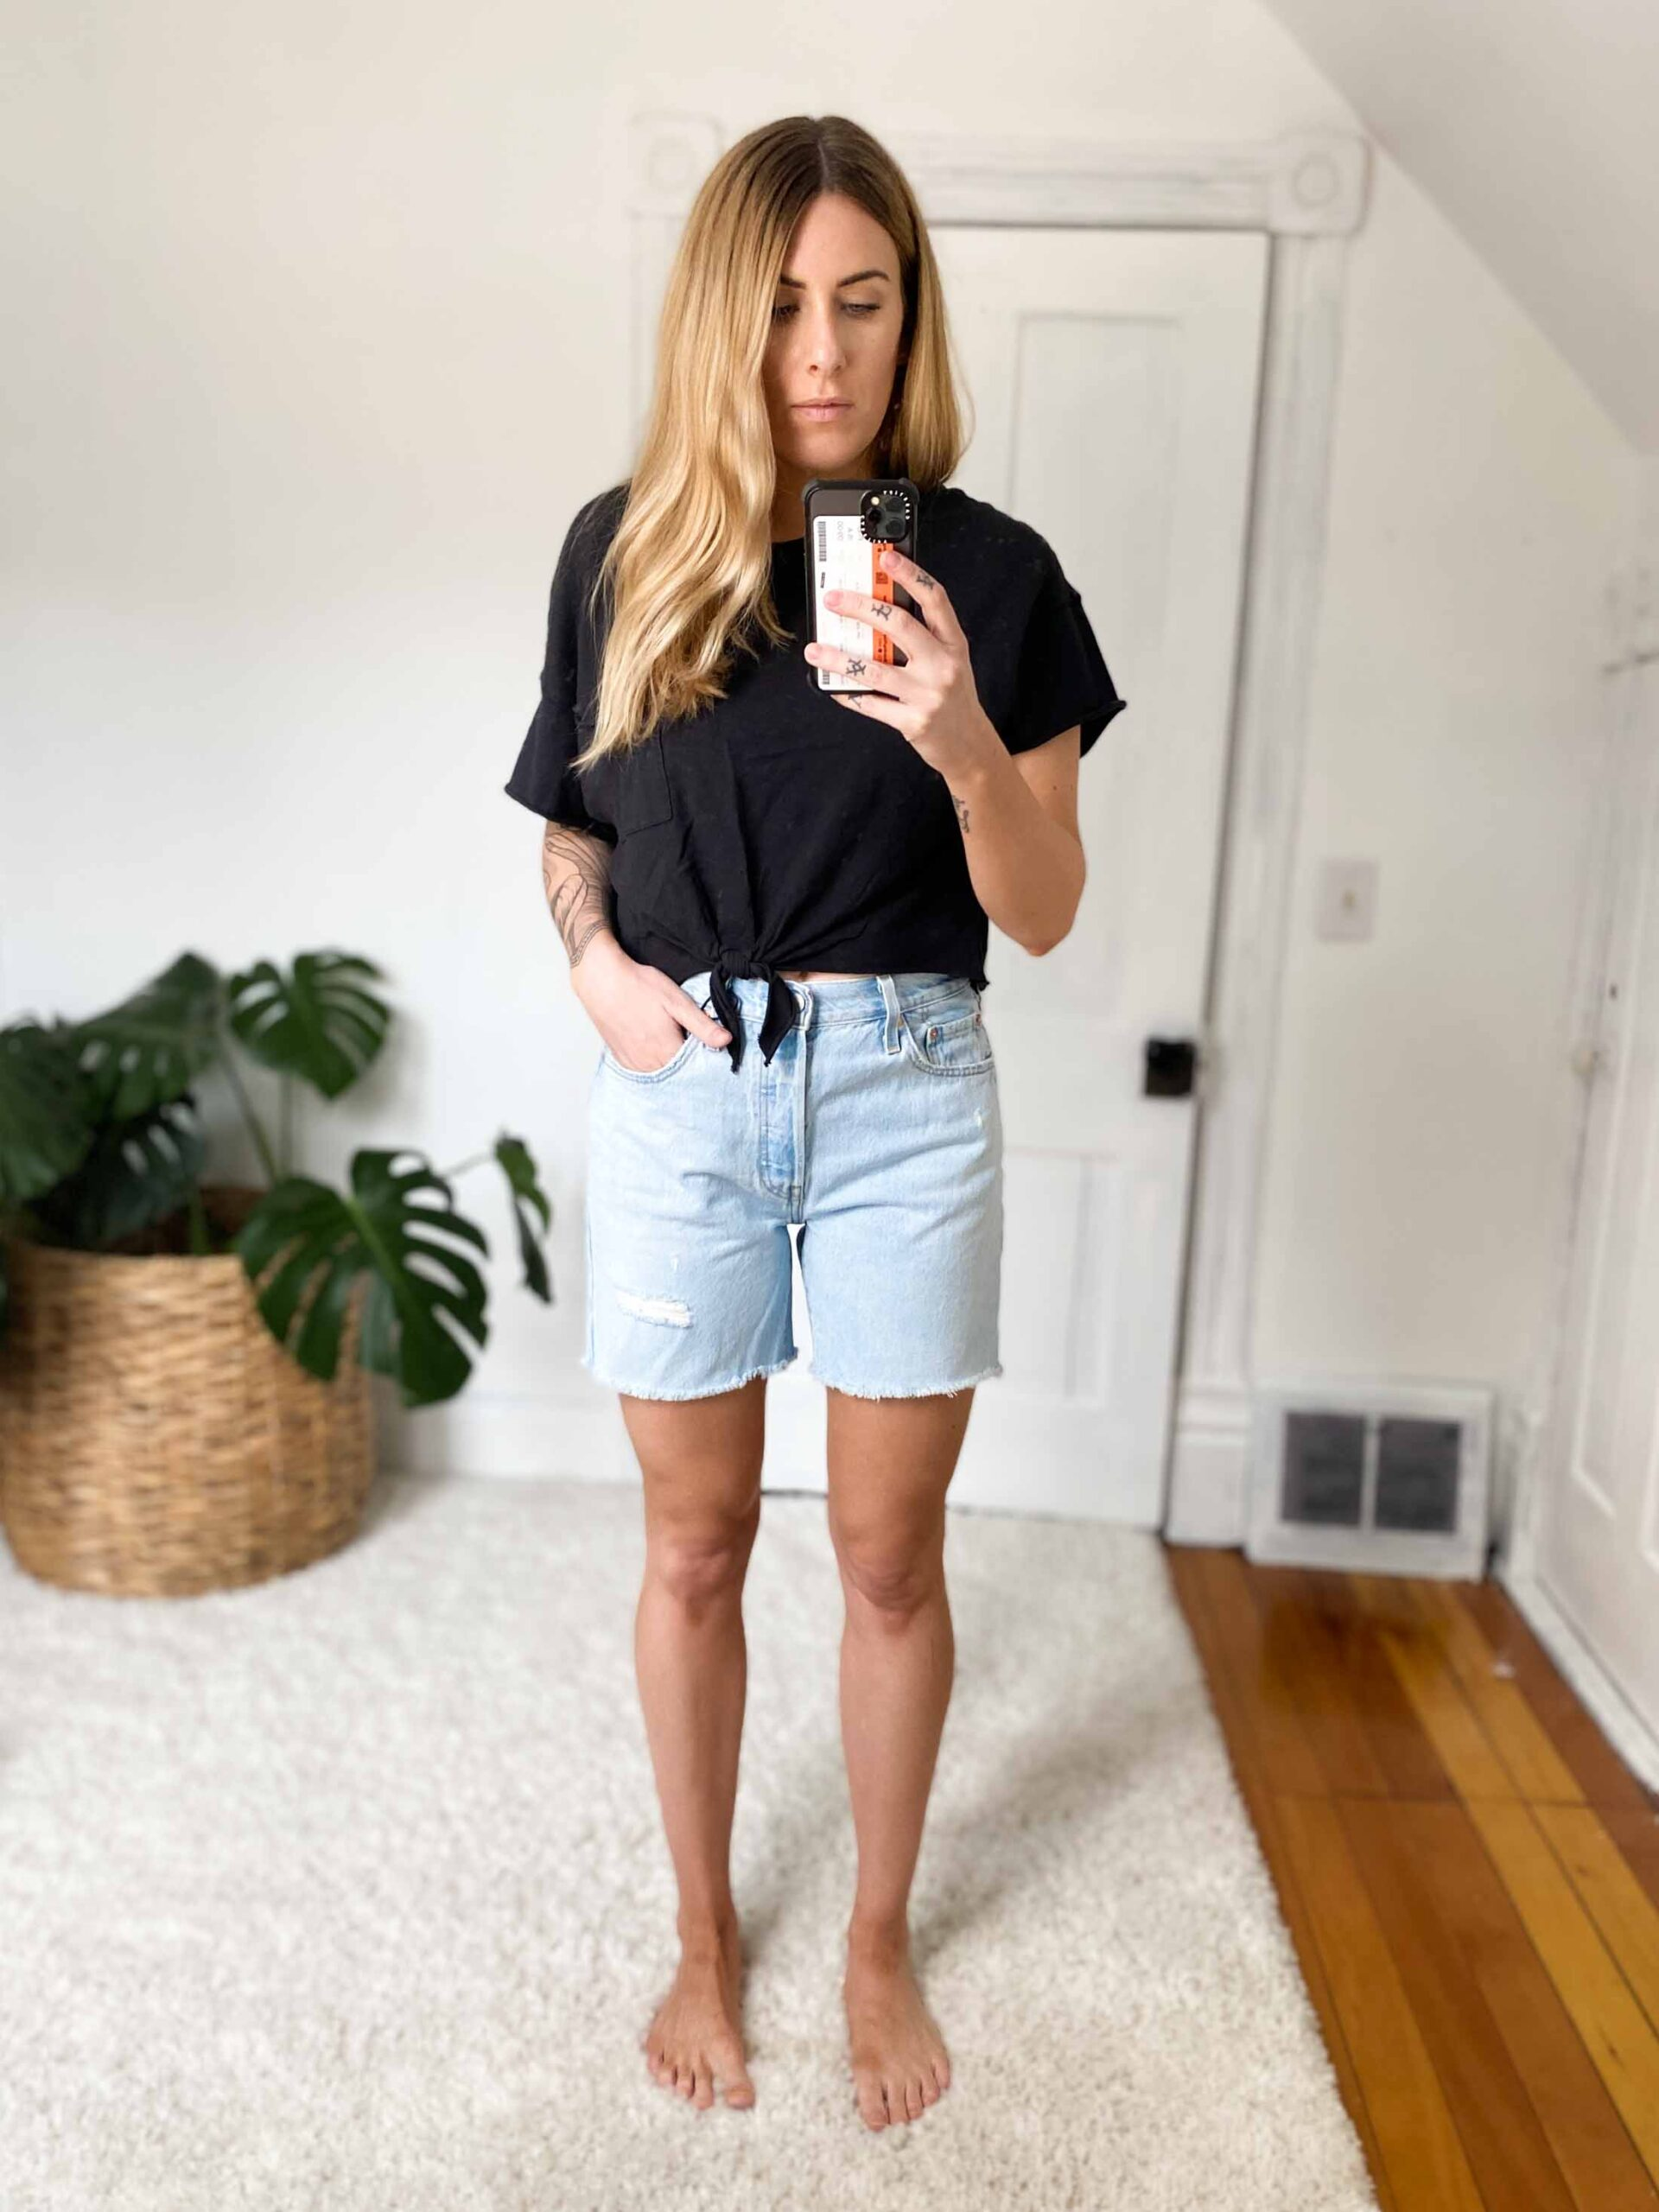 """I set out to find a great pair of long denim shorts, avoiding real-deal Bermuda styles that touch the knees, yet still providing a great length on my 5'9"""" legs."""